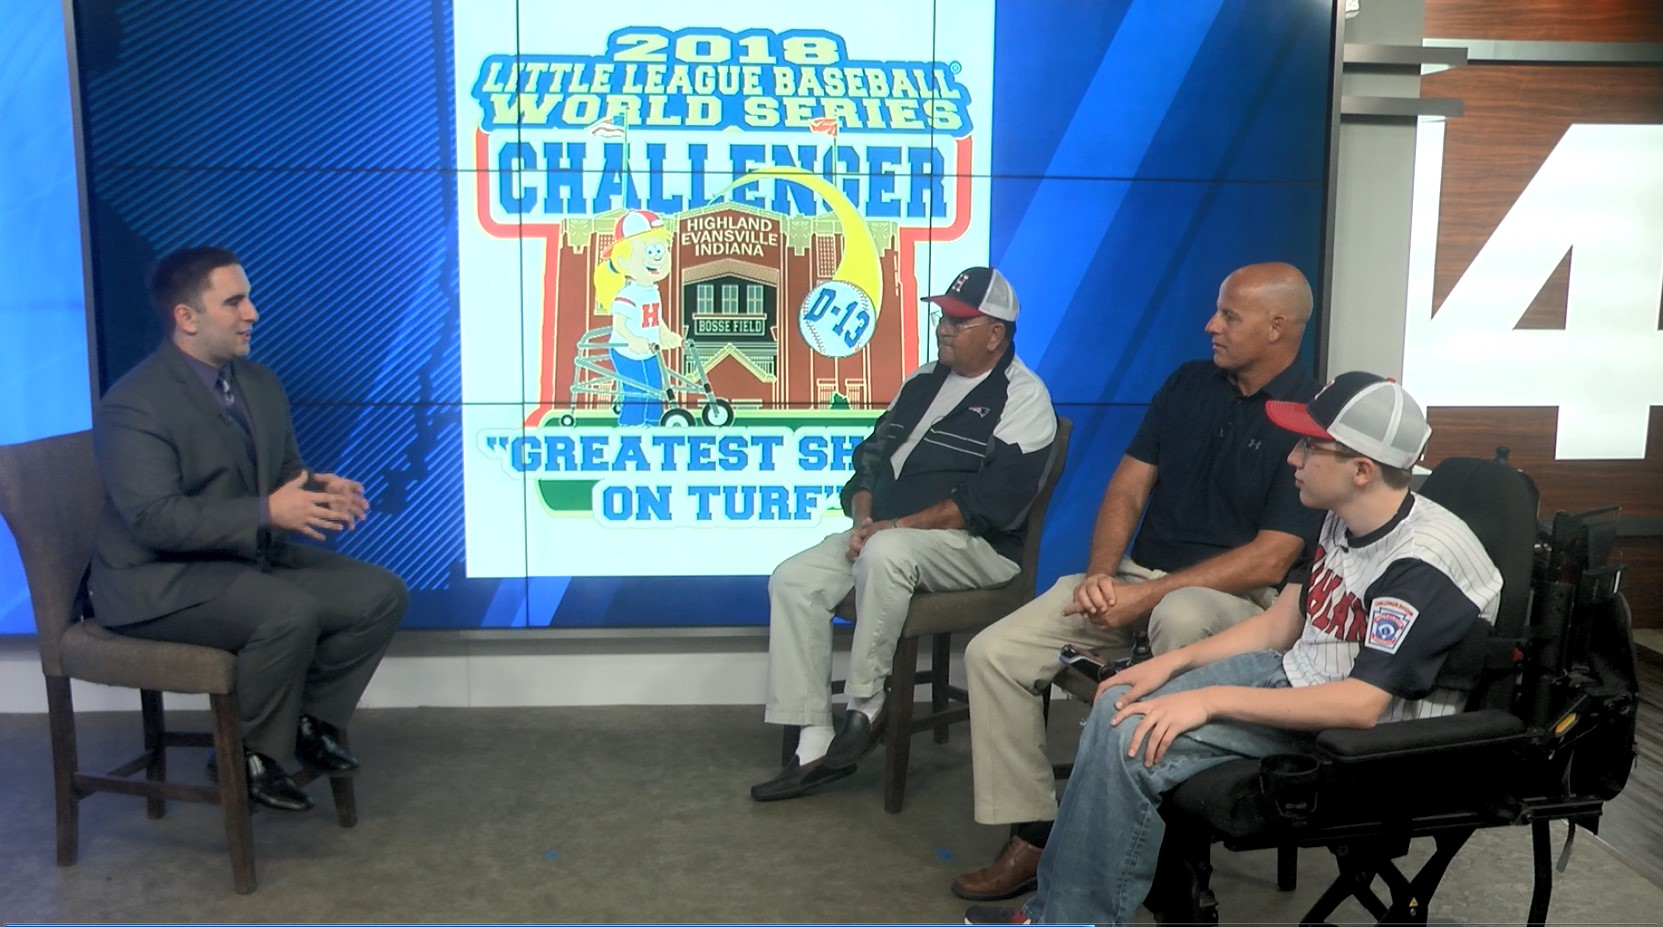 Photo of 44Sports in Studio: Highland Challenger League Talks LLWS